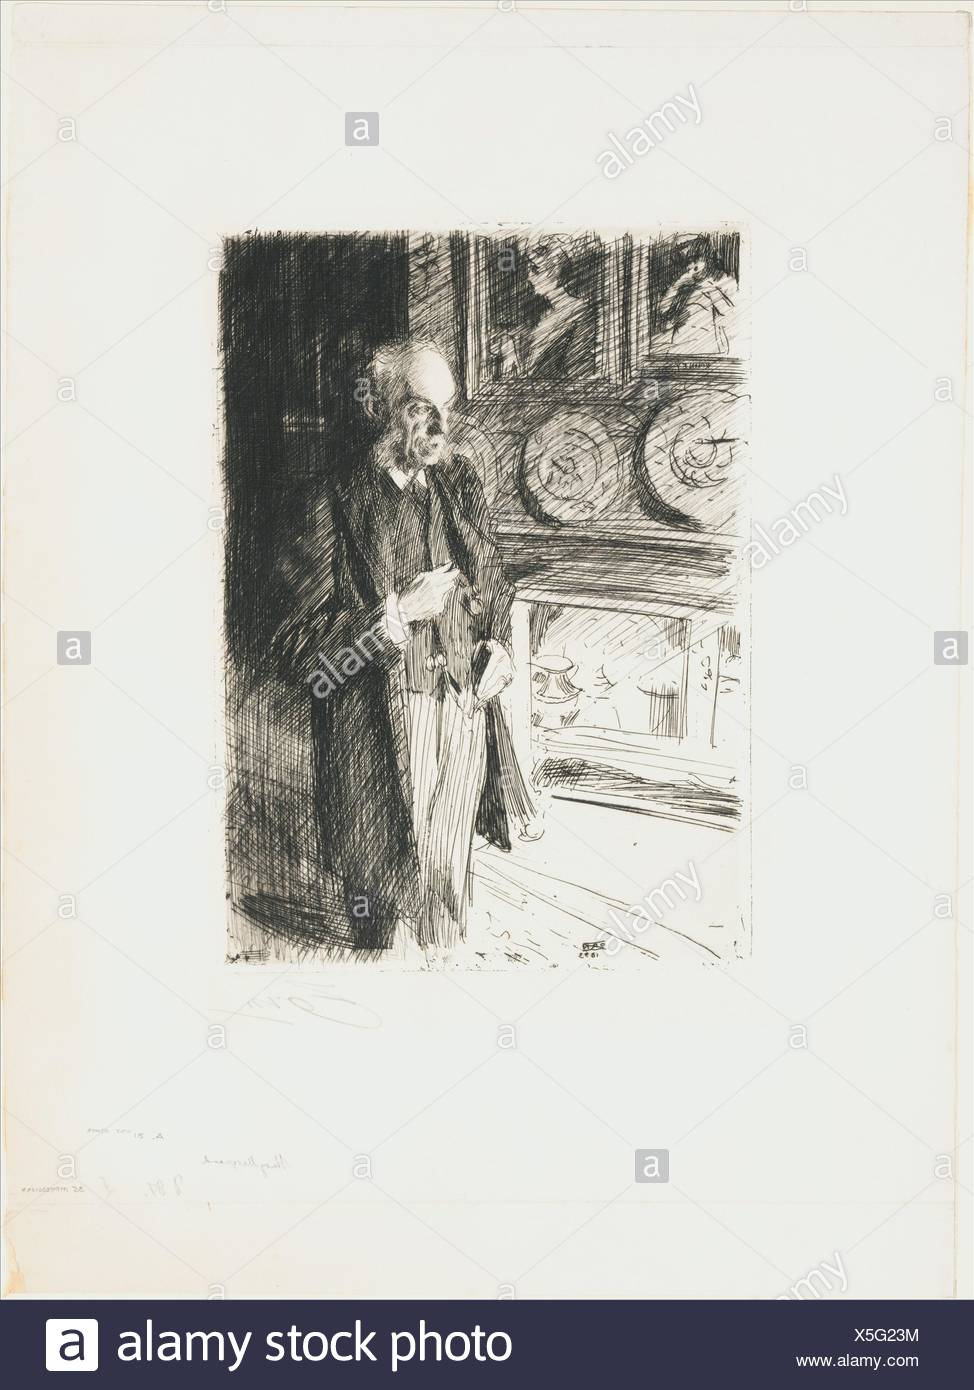 Henry Marquand. Artist: Anders Zorn (Swedish, Mora 1860-1920 Mora); Date: 1893; Medium: Etching; only state; Dimensions: Plate: 10 7/8 x 7 13/16 in. Stock Photo